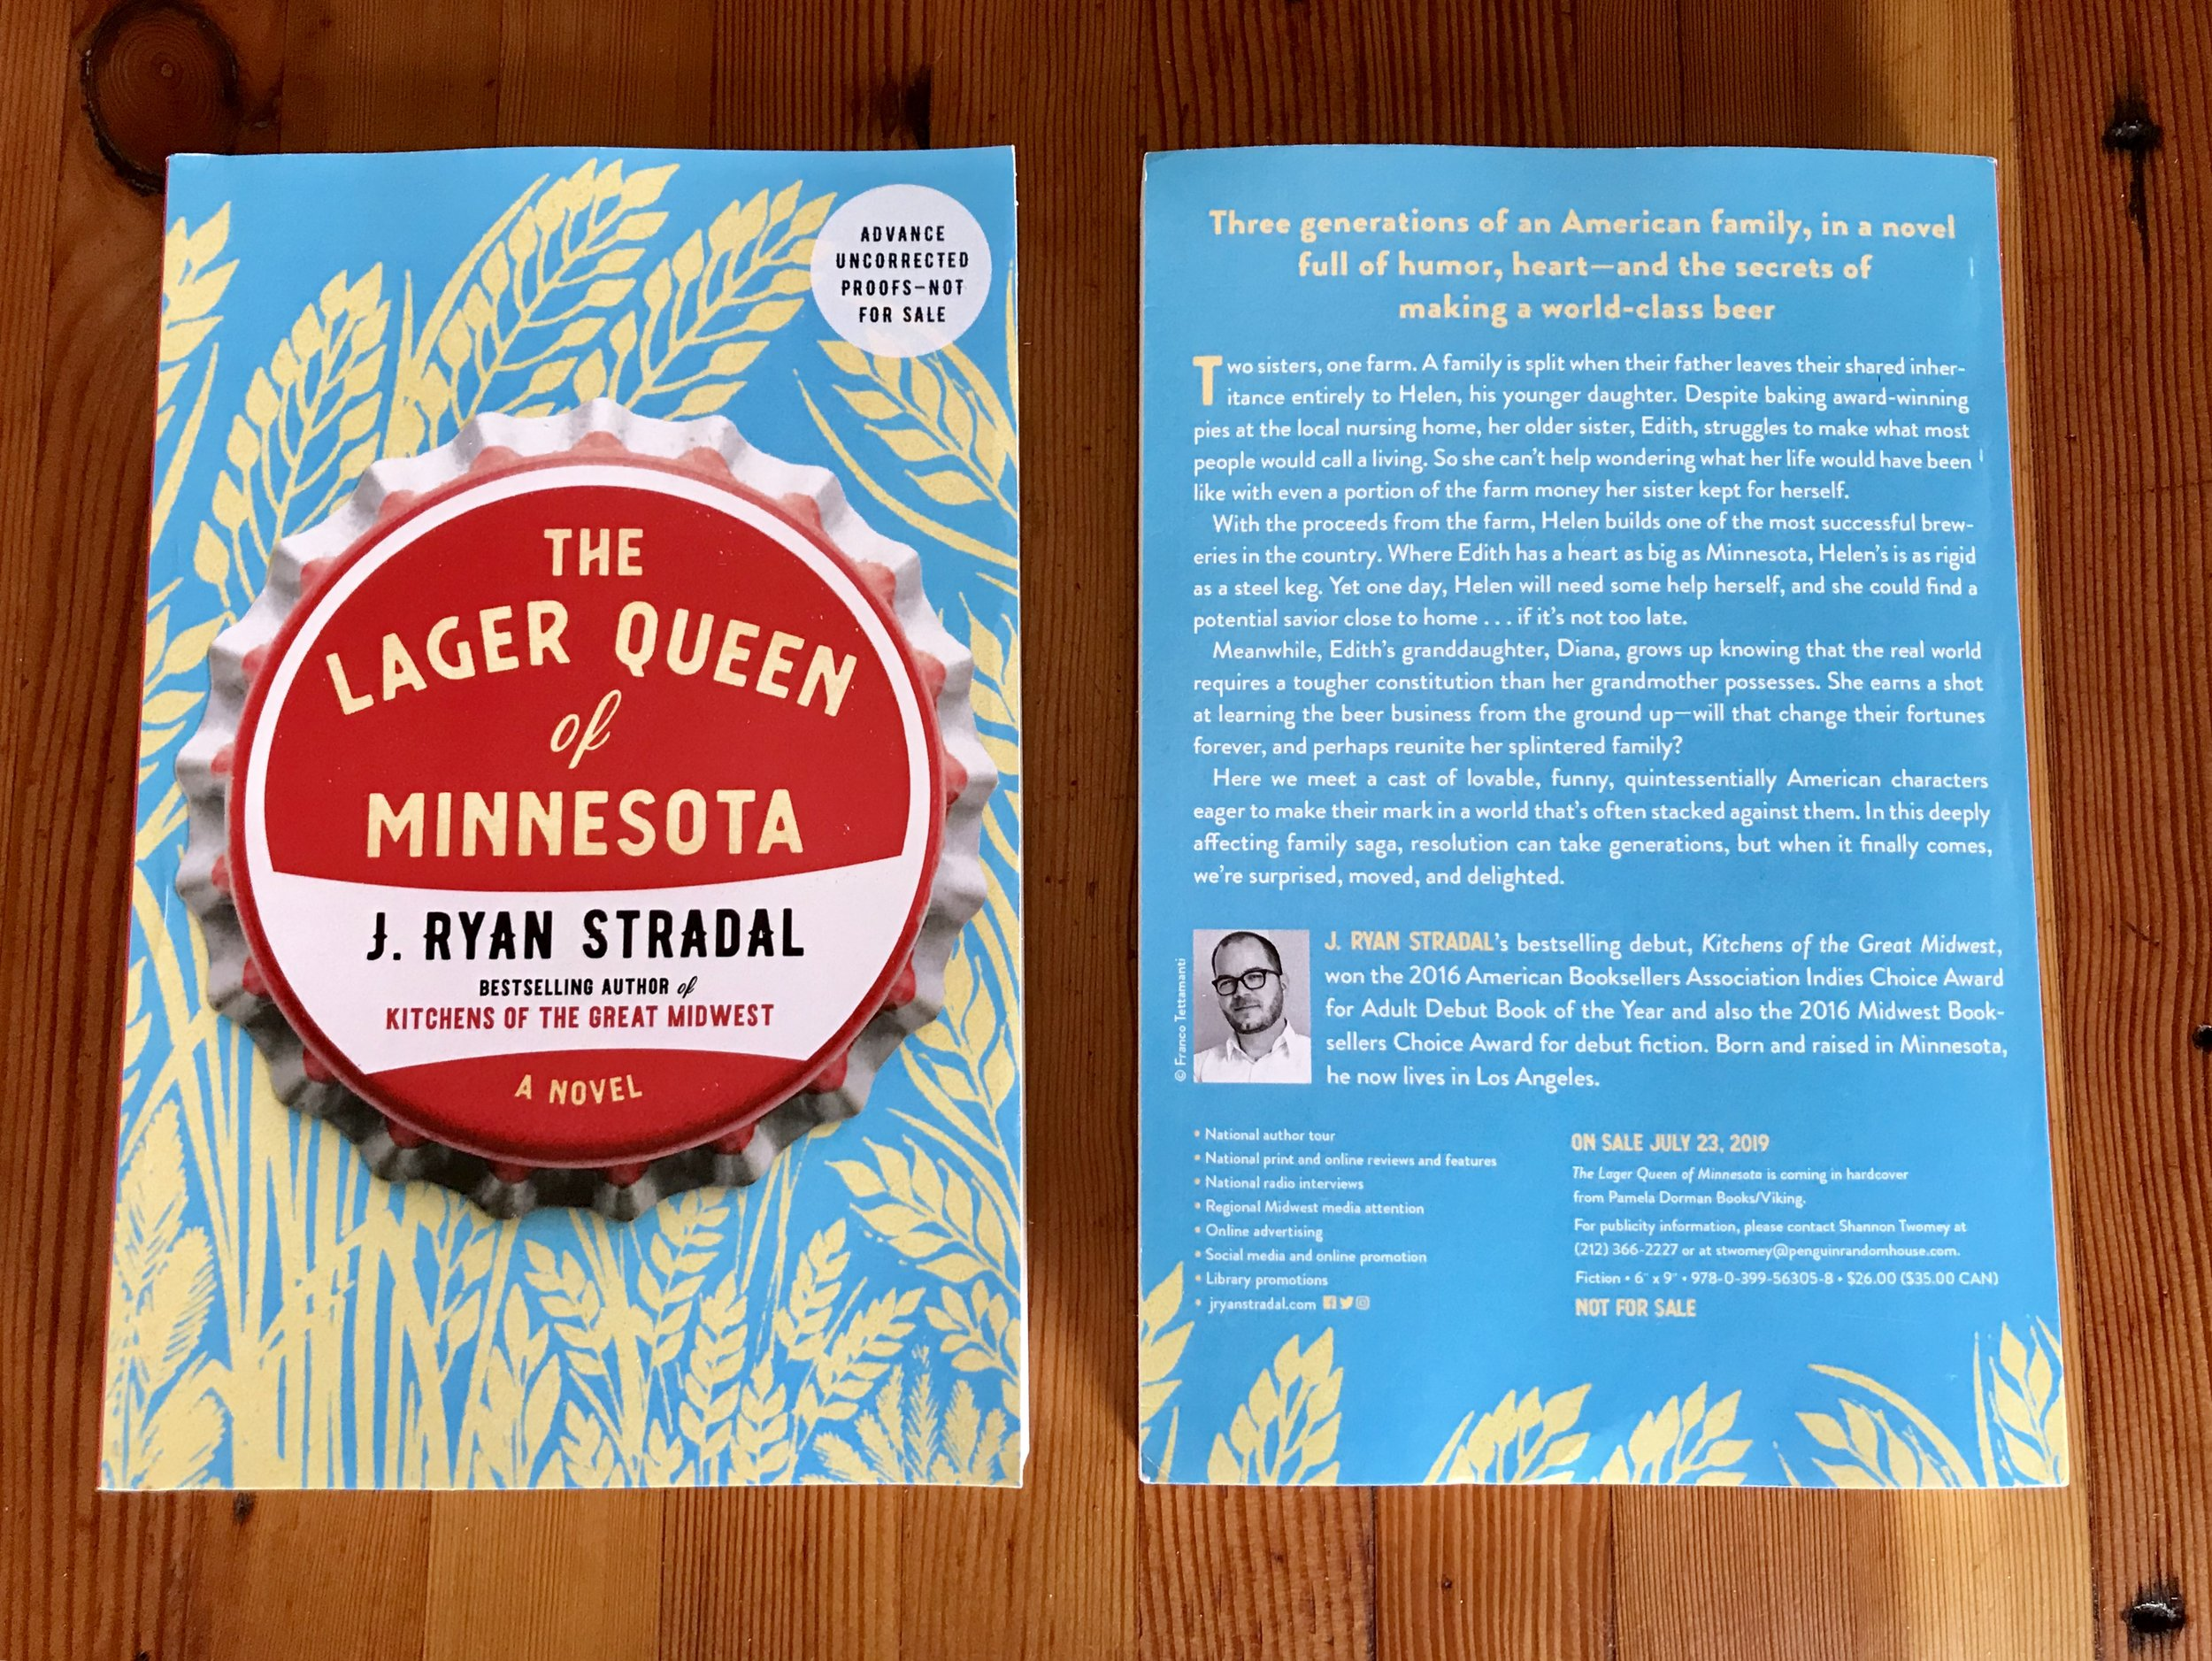 Lager Queen Galleys.jpg